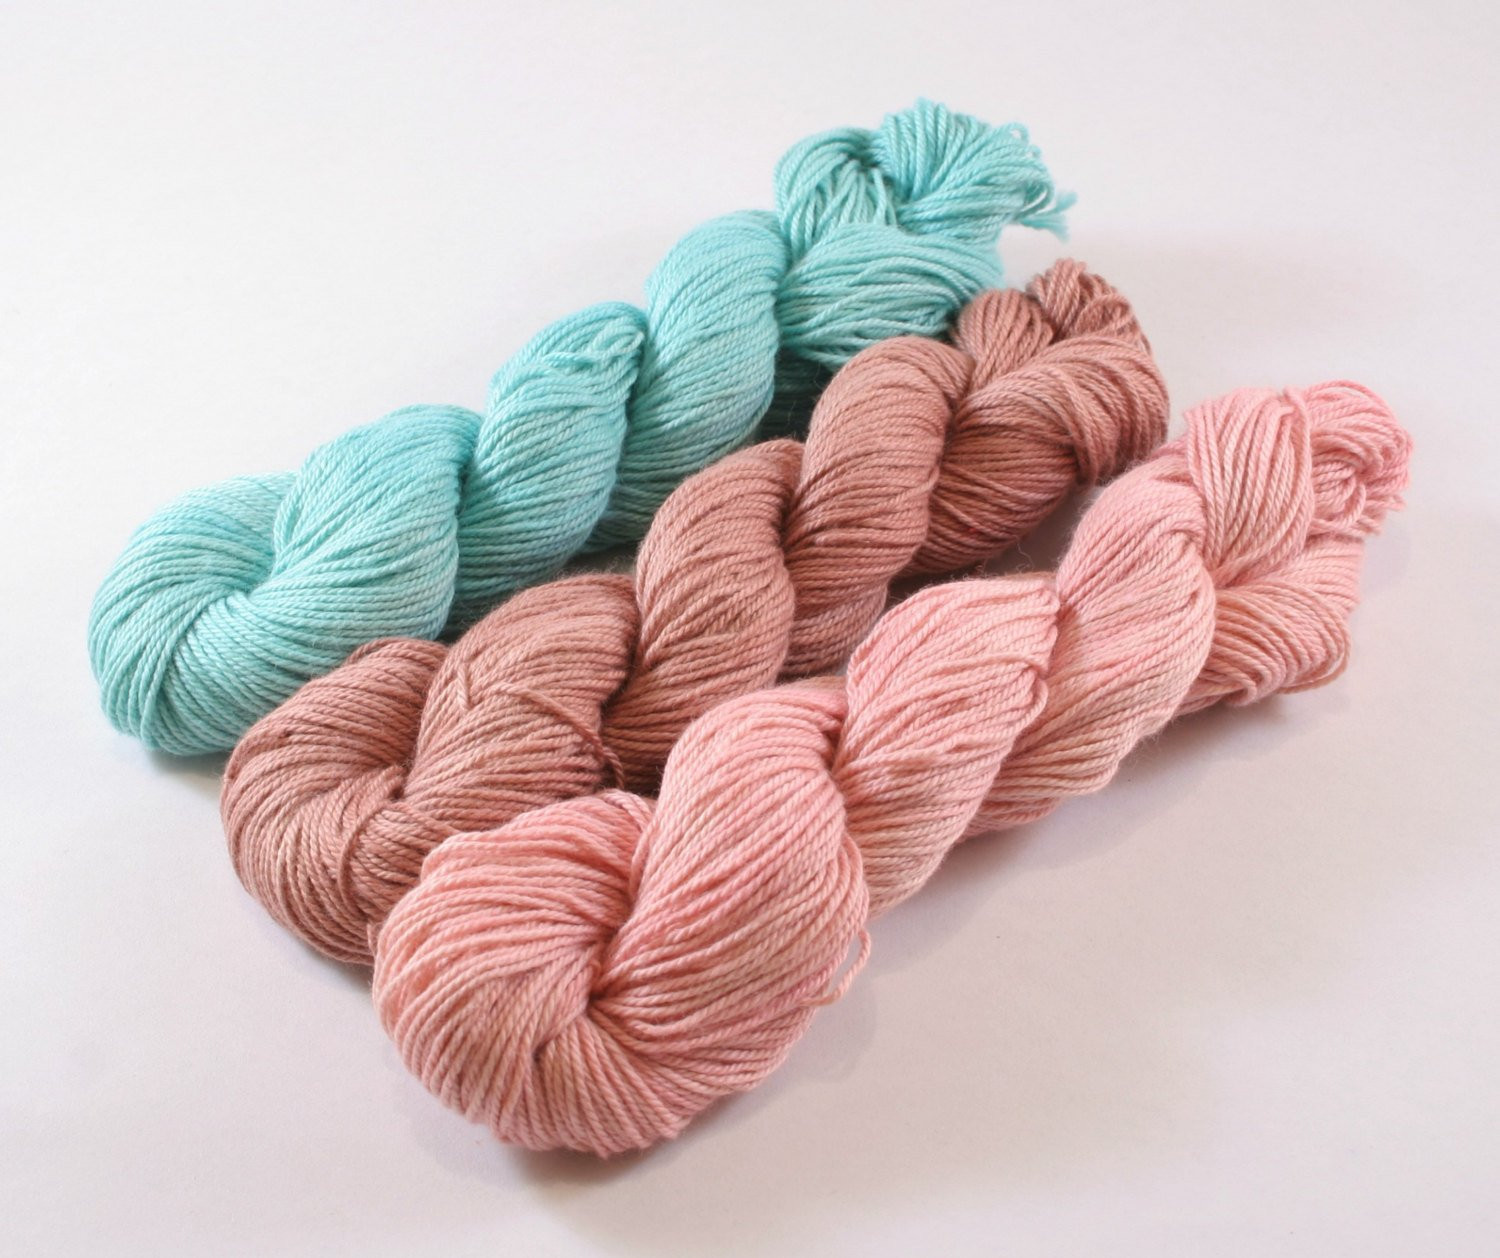 Crochet Threads Size 10 Inspirational Hand Dyed Cotton Thread Crochet Size 10 Pastel by Eadenyarns Of Top 42 Ideas Crochet Threads Size 10